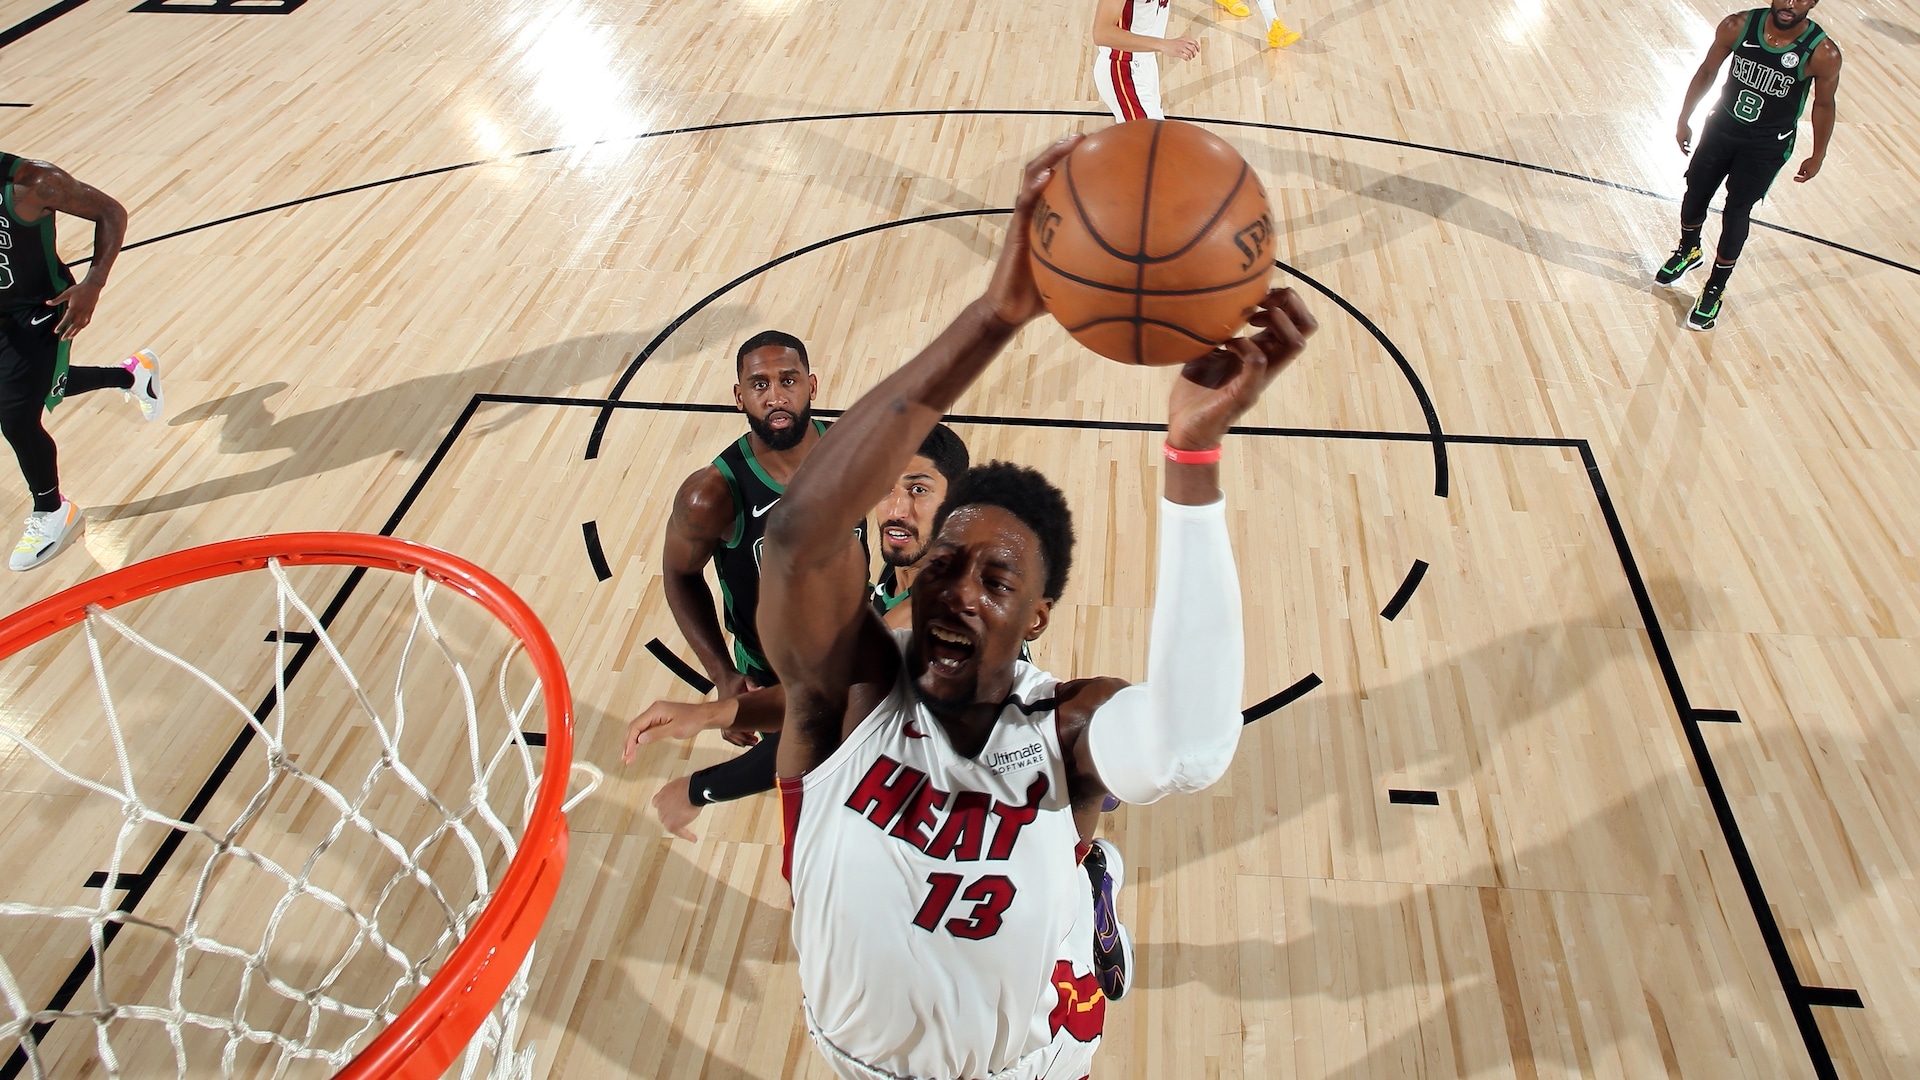 Heat's latest knockout quarter sets Celtics on their heels